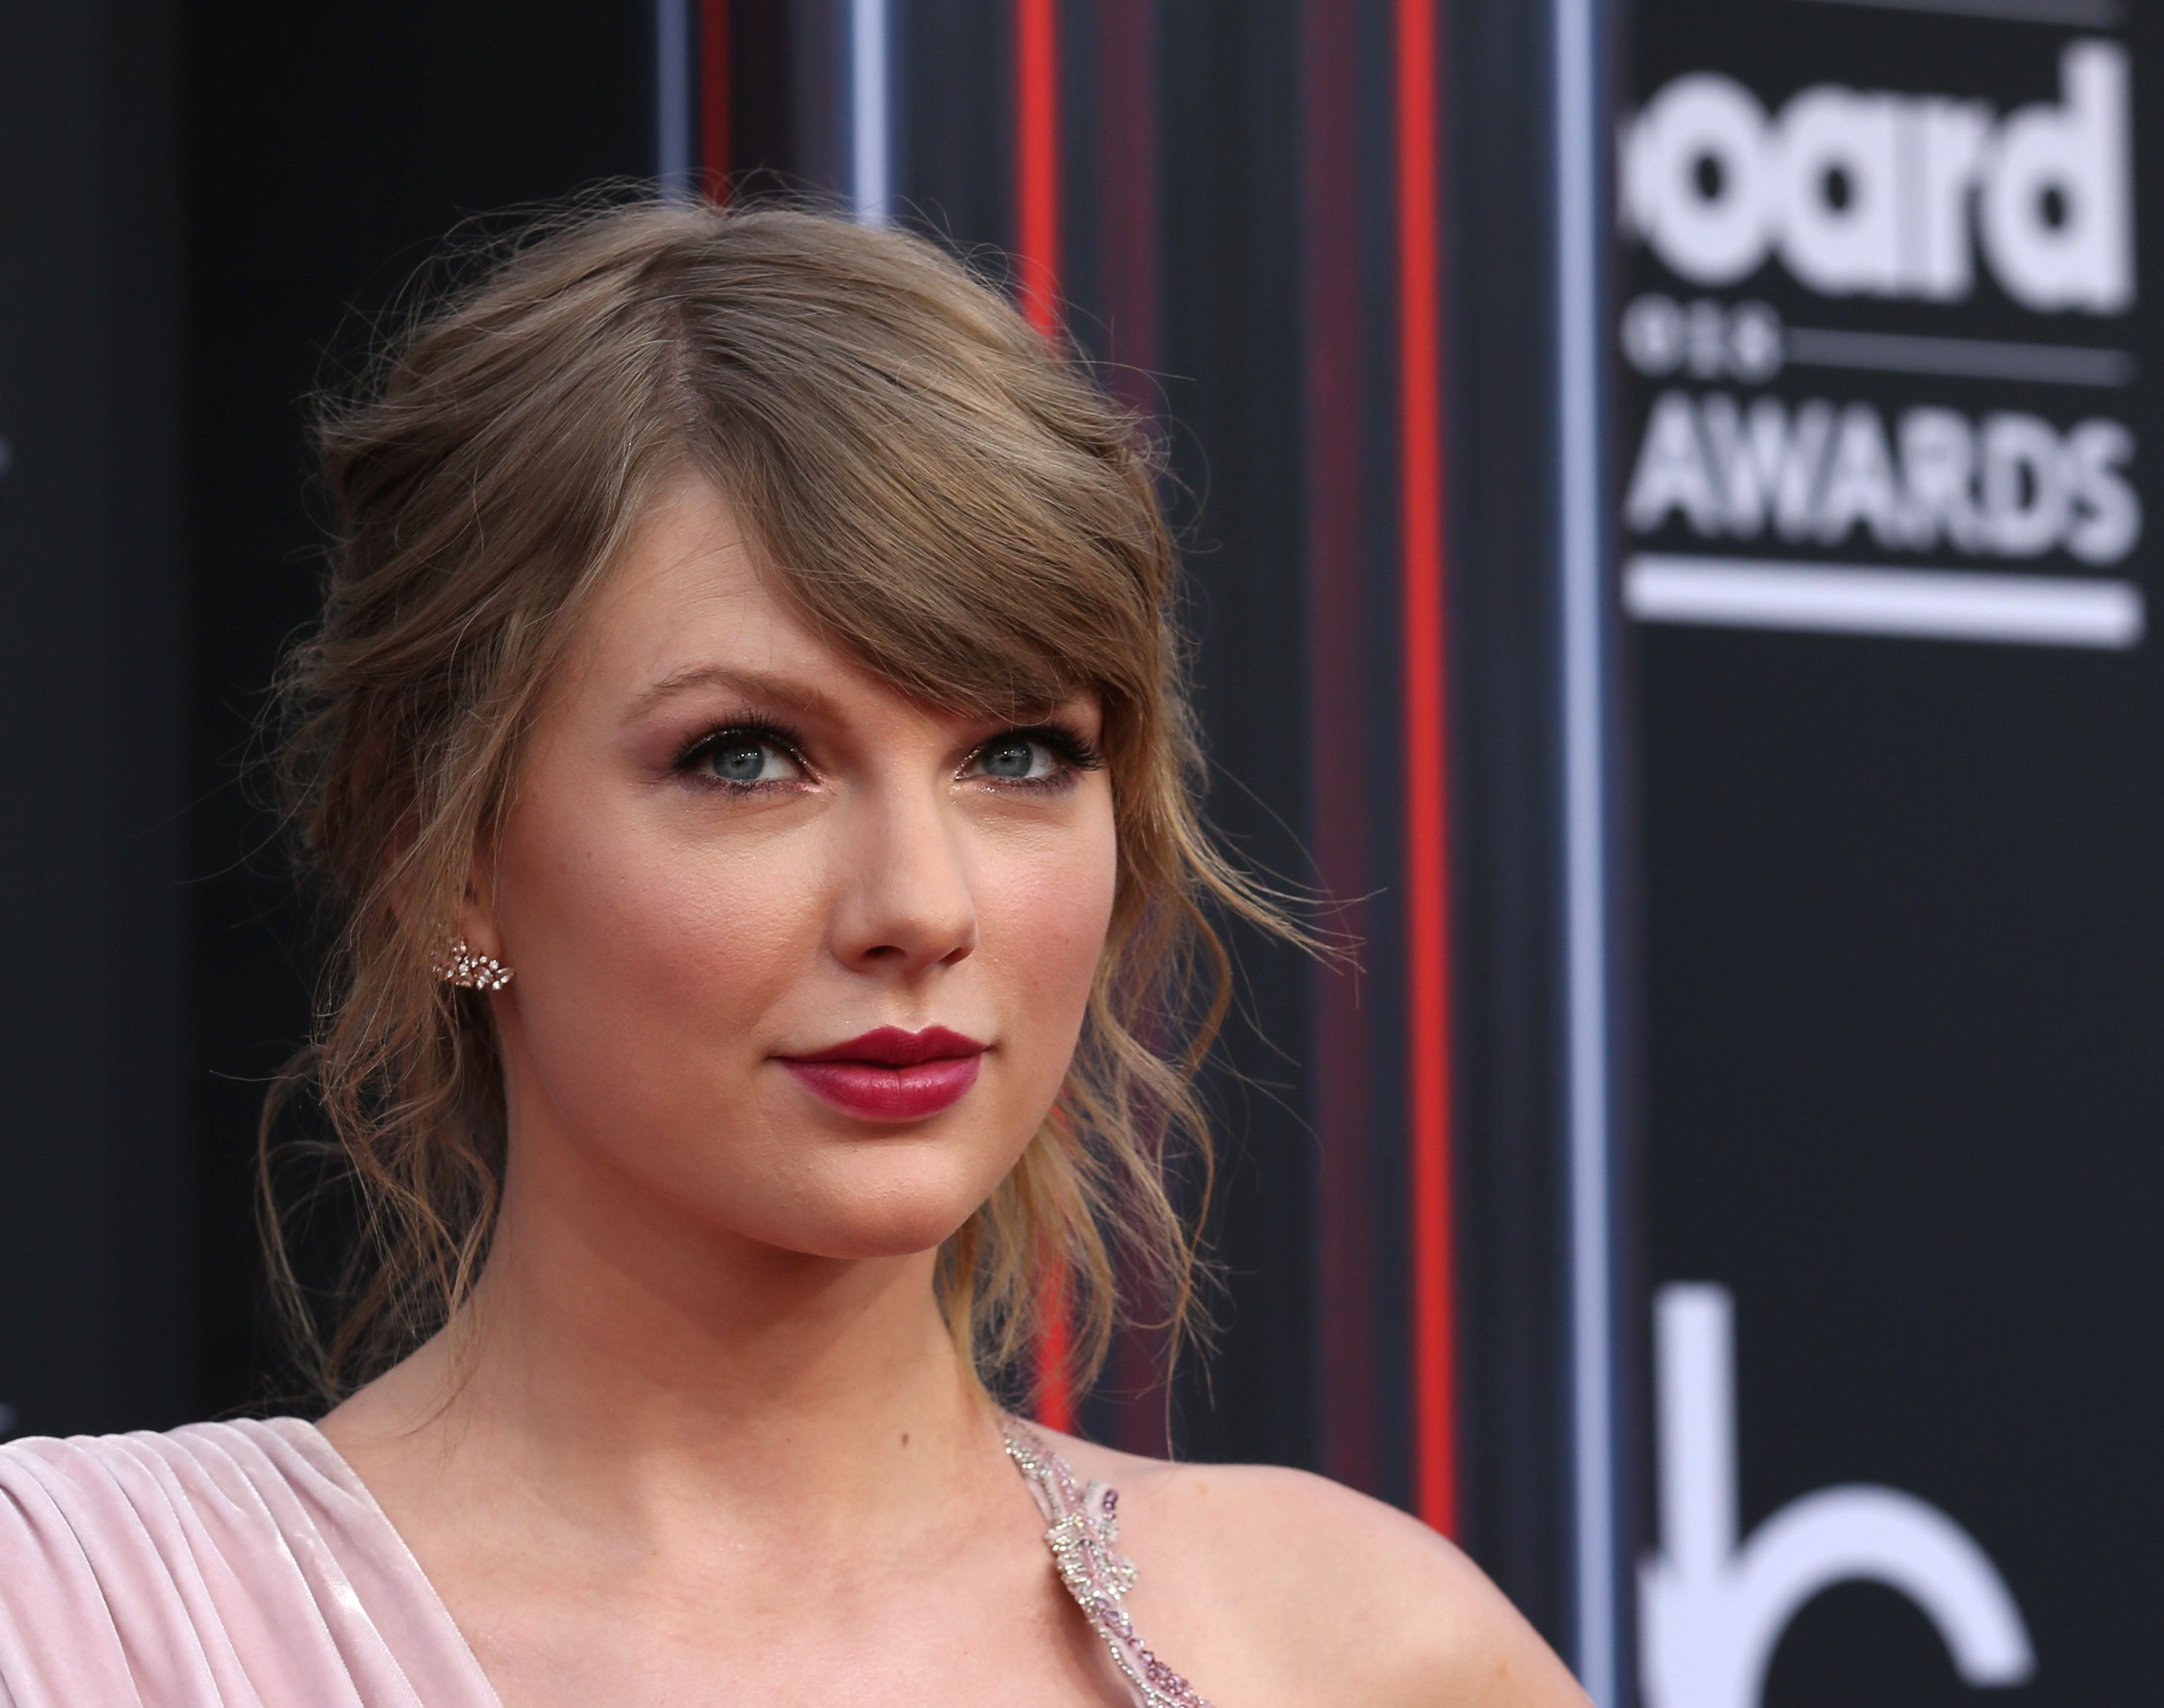 Taylor Swift voices her political opinion ahead of midterm elections